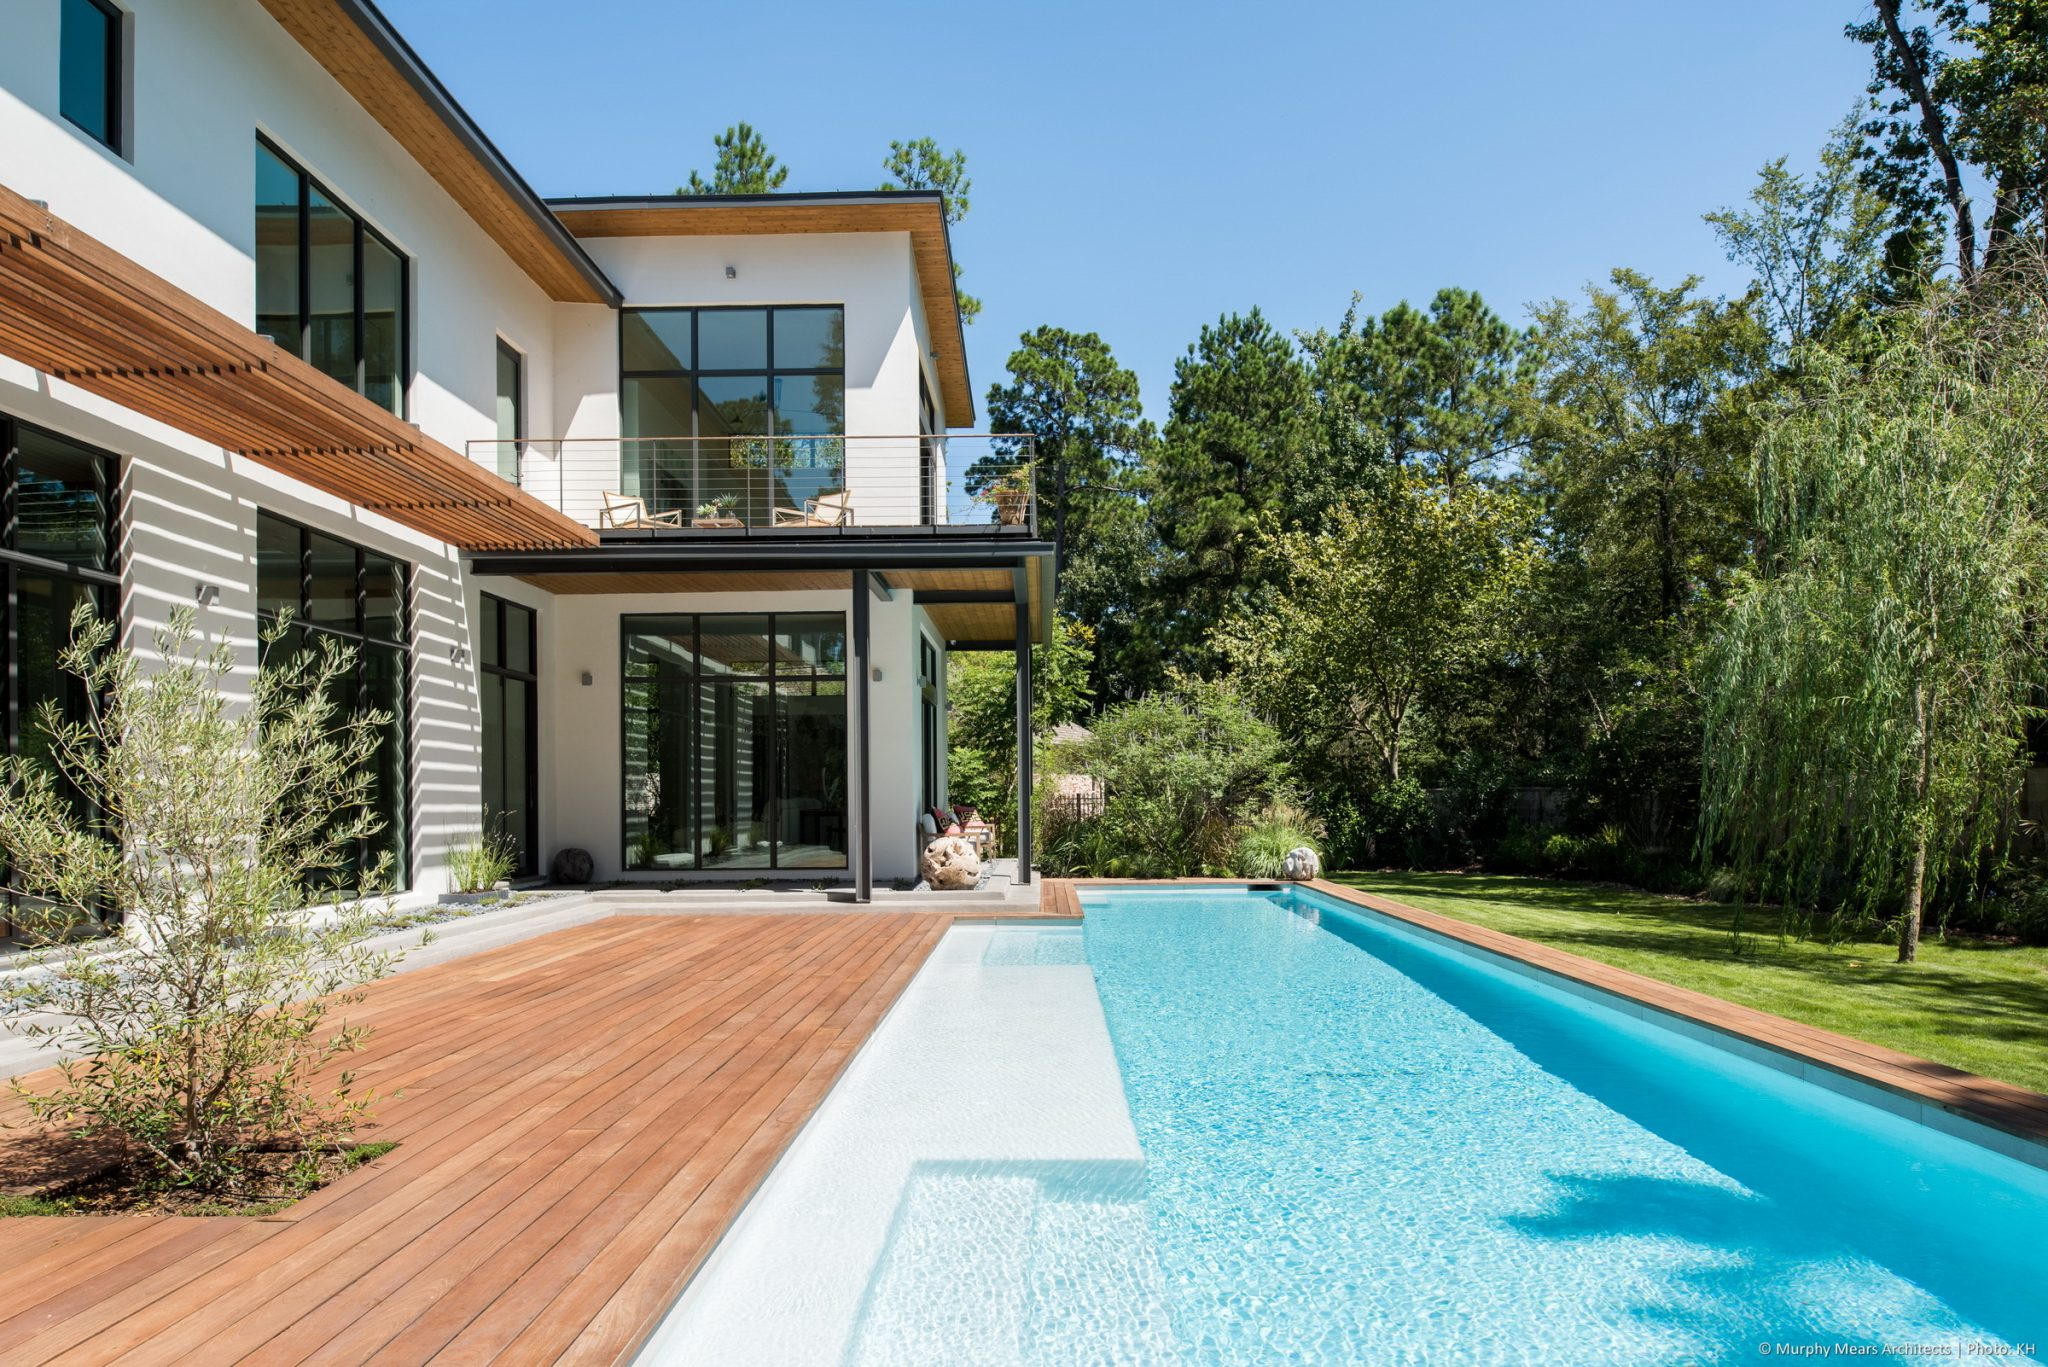 Open House - Wood deck, with an integrated drainage system below, bridging between the house and pool.